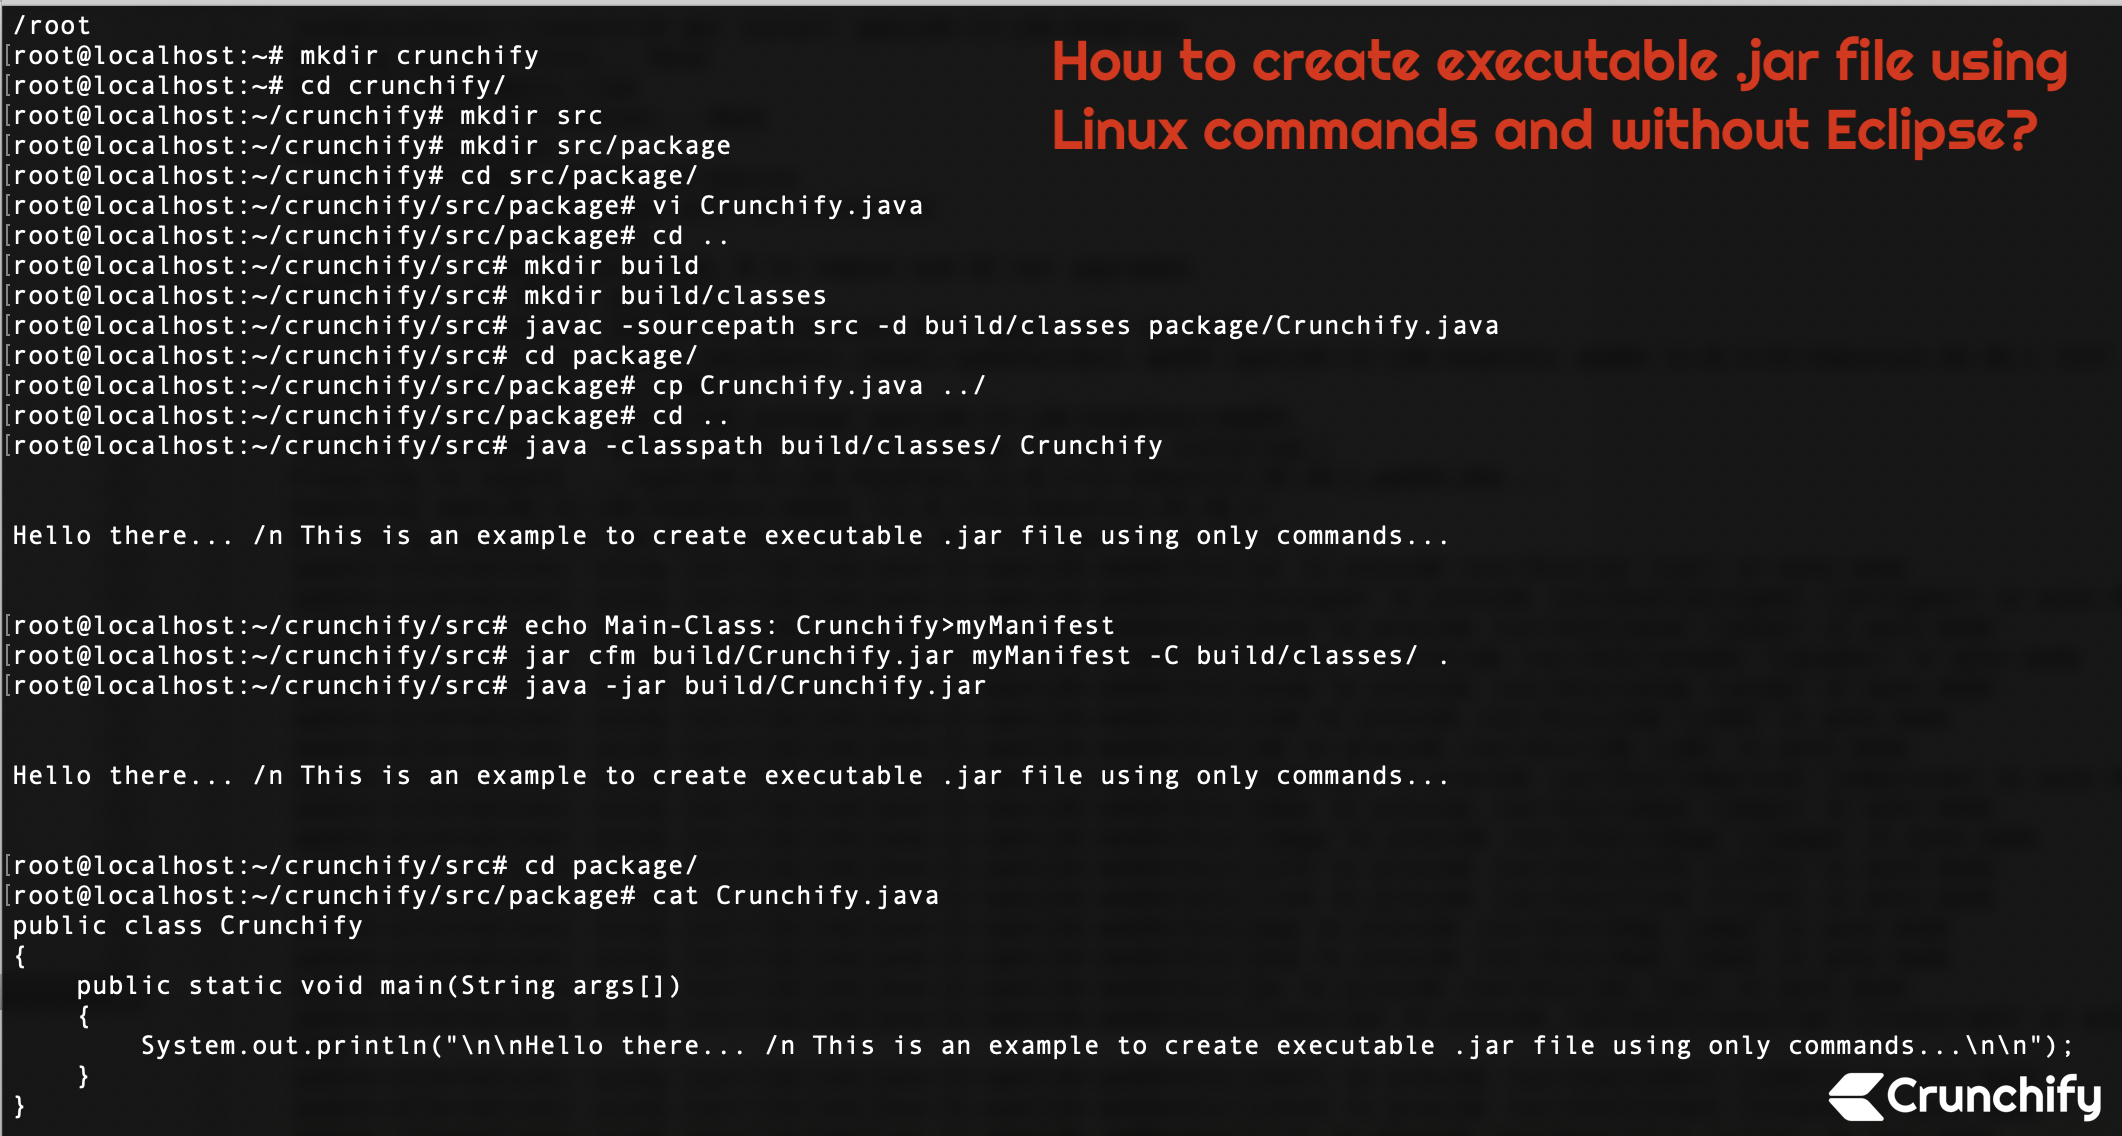 How to create executable  jar file using Linux commands and